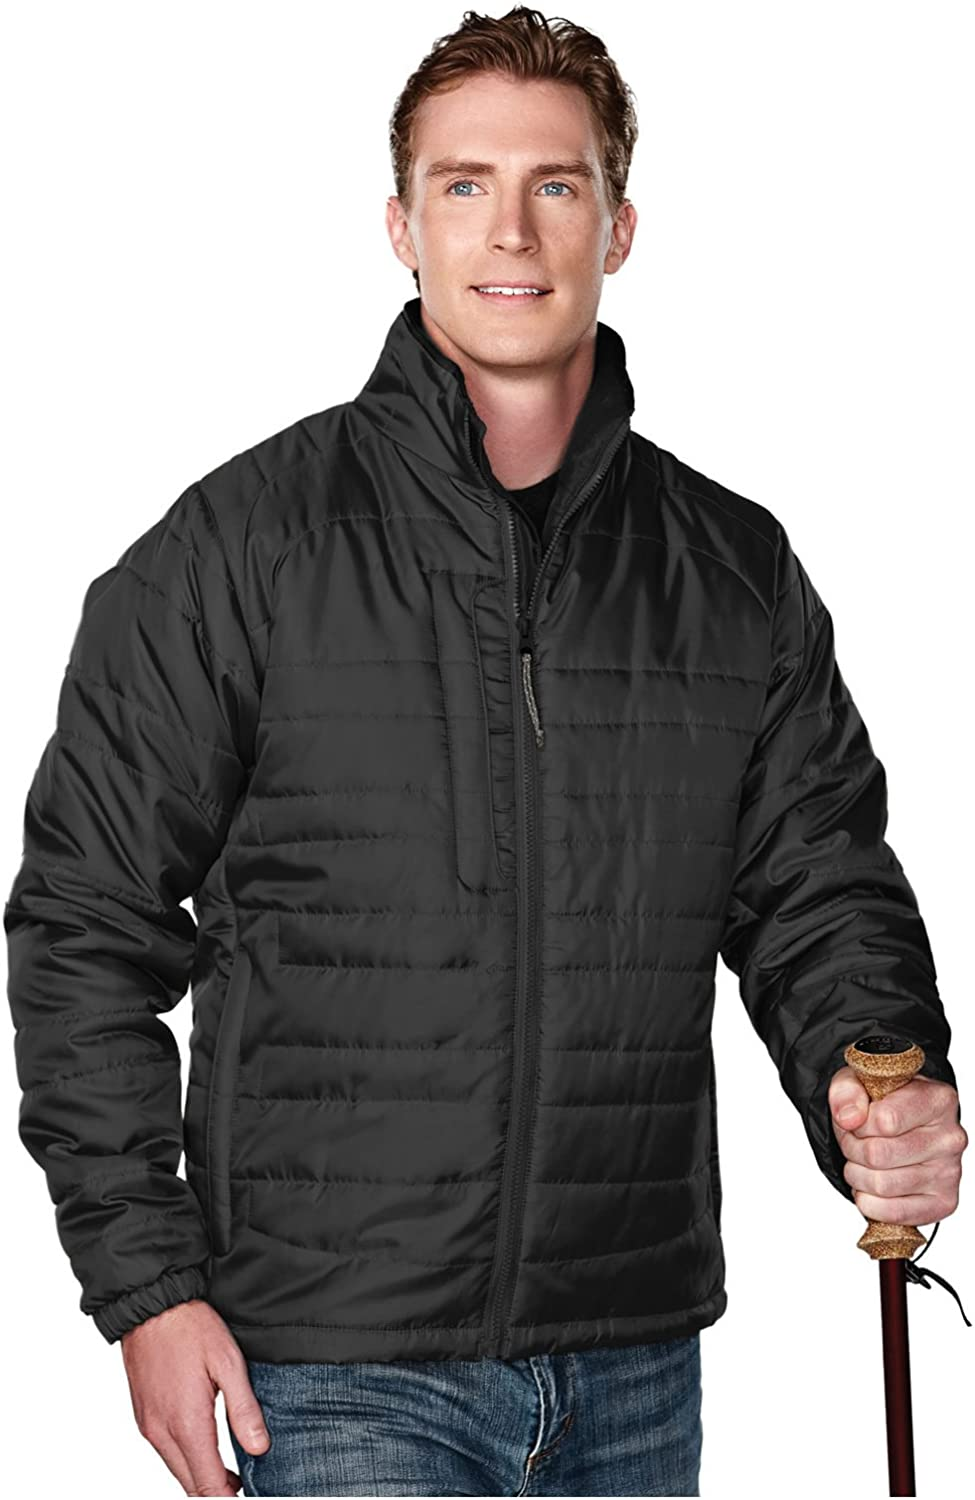 Tri-Mountain Men's 100% Polyester Rib- Stop Long Sleeve Quilt Jacket With Water Resistent, XL, Black/Charcoal